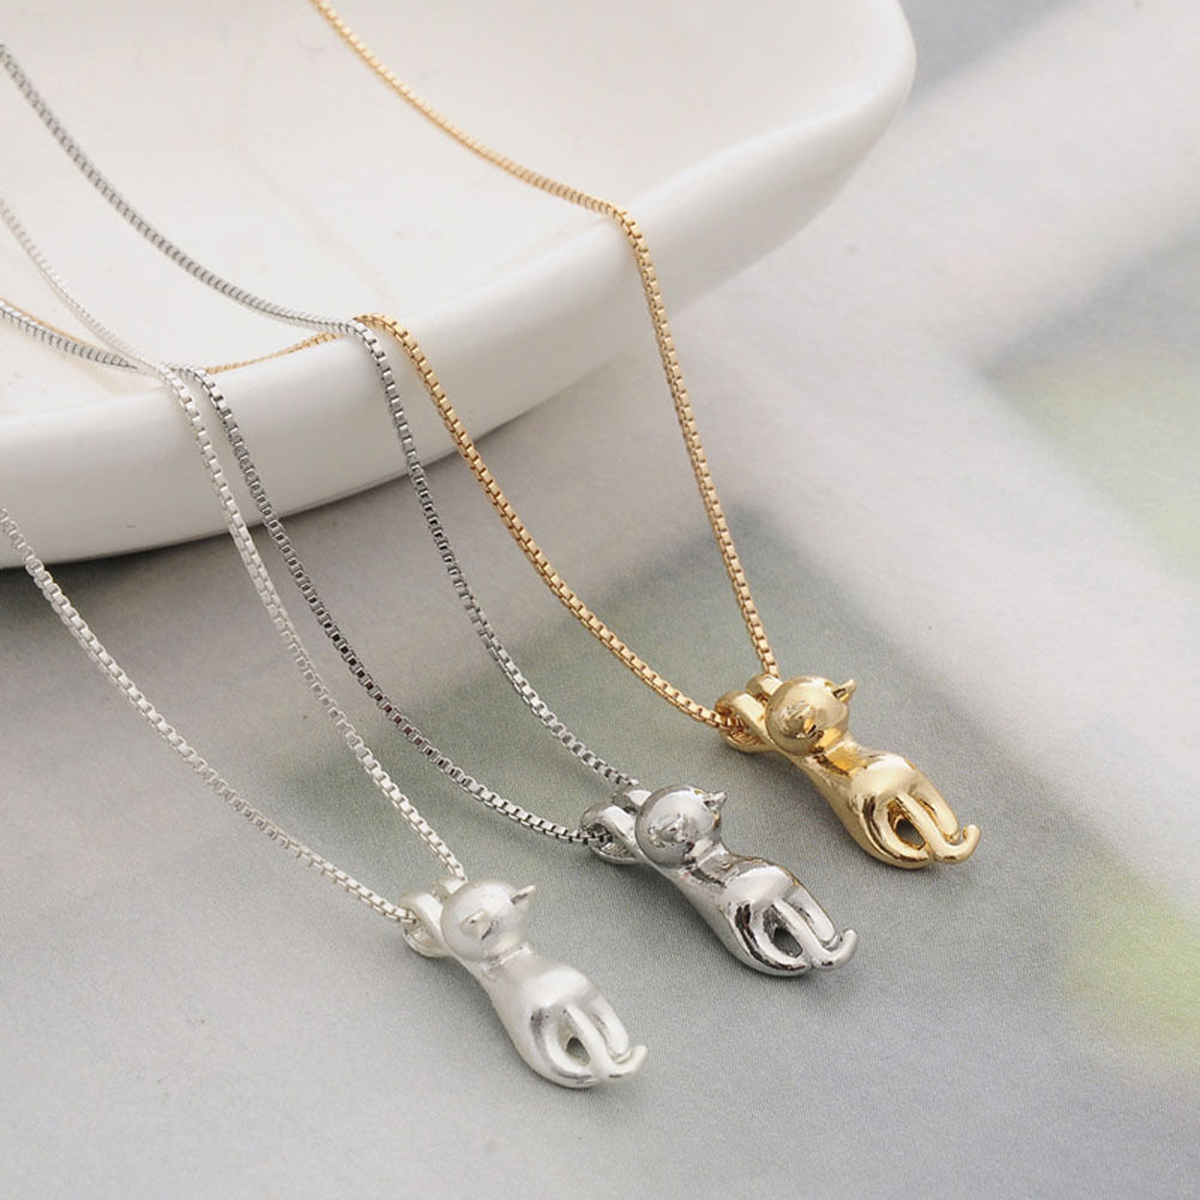 New Silver Lovely Jumping Cat Pendant Necklace Kitten Necklace Women Jewelry